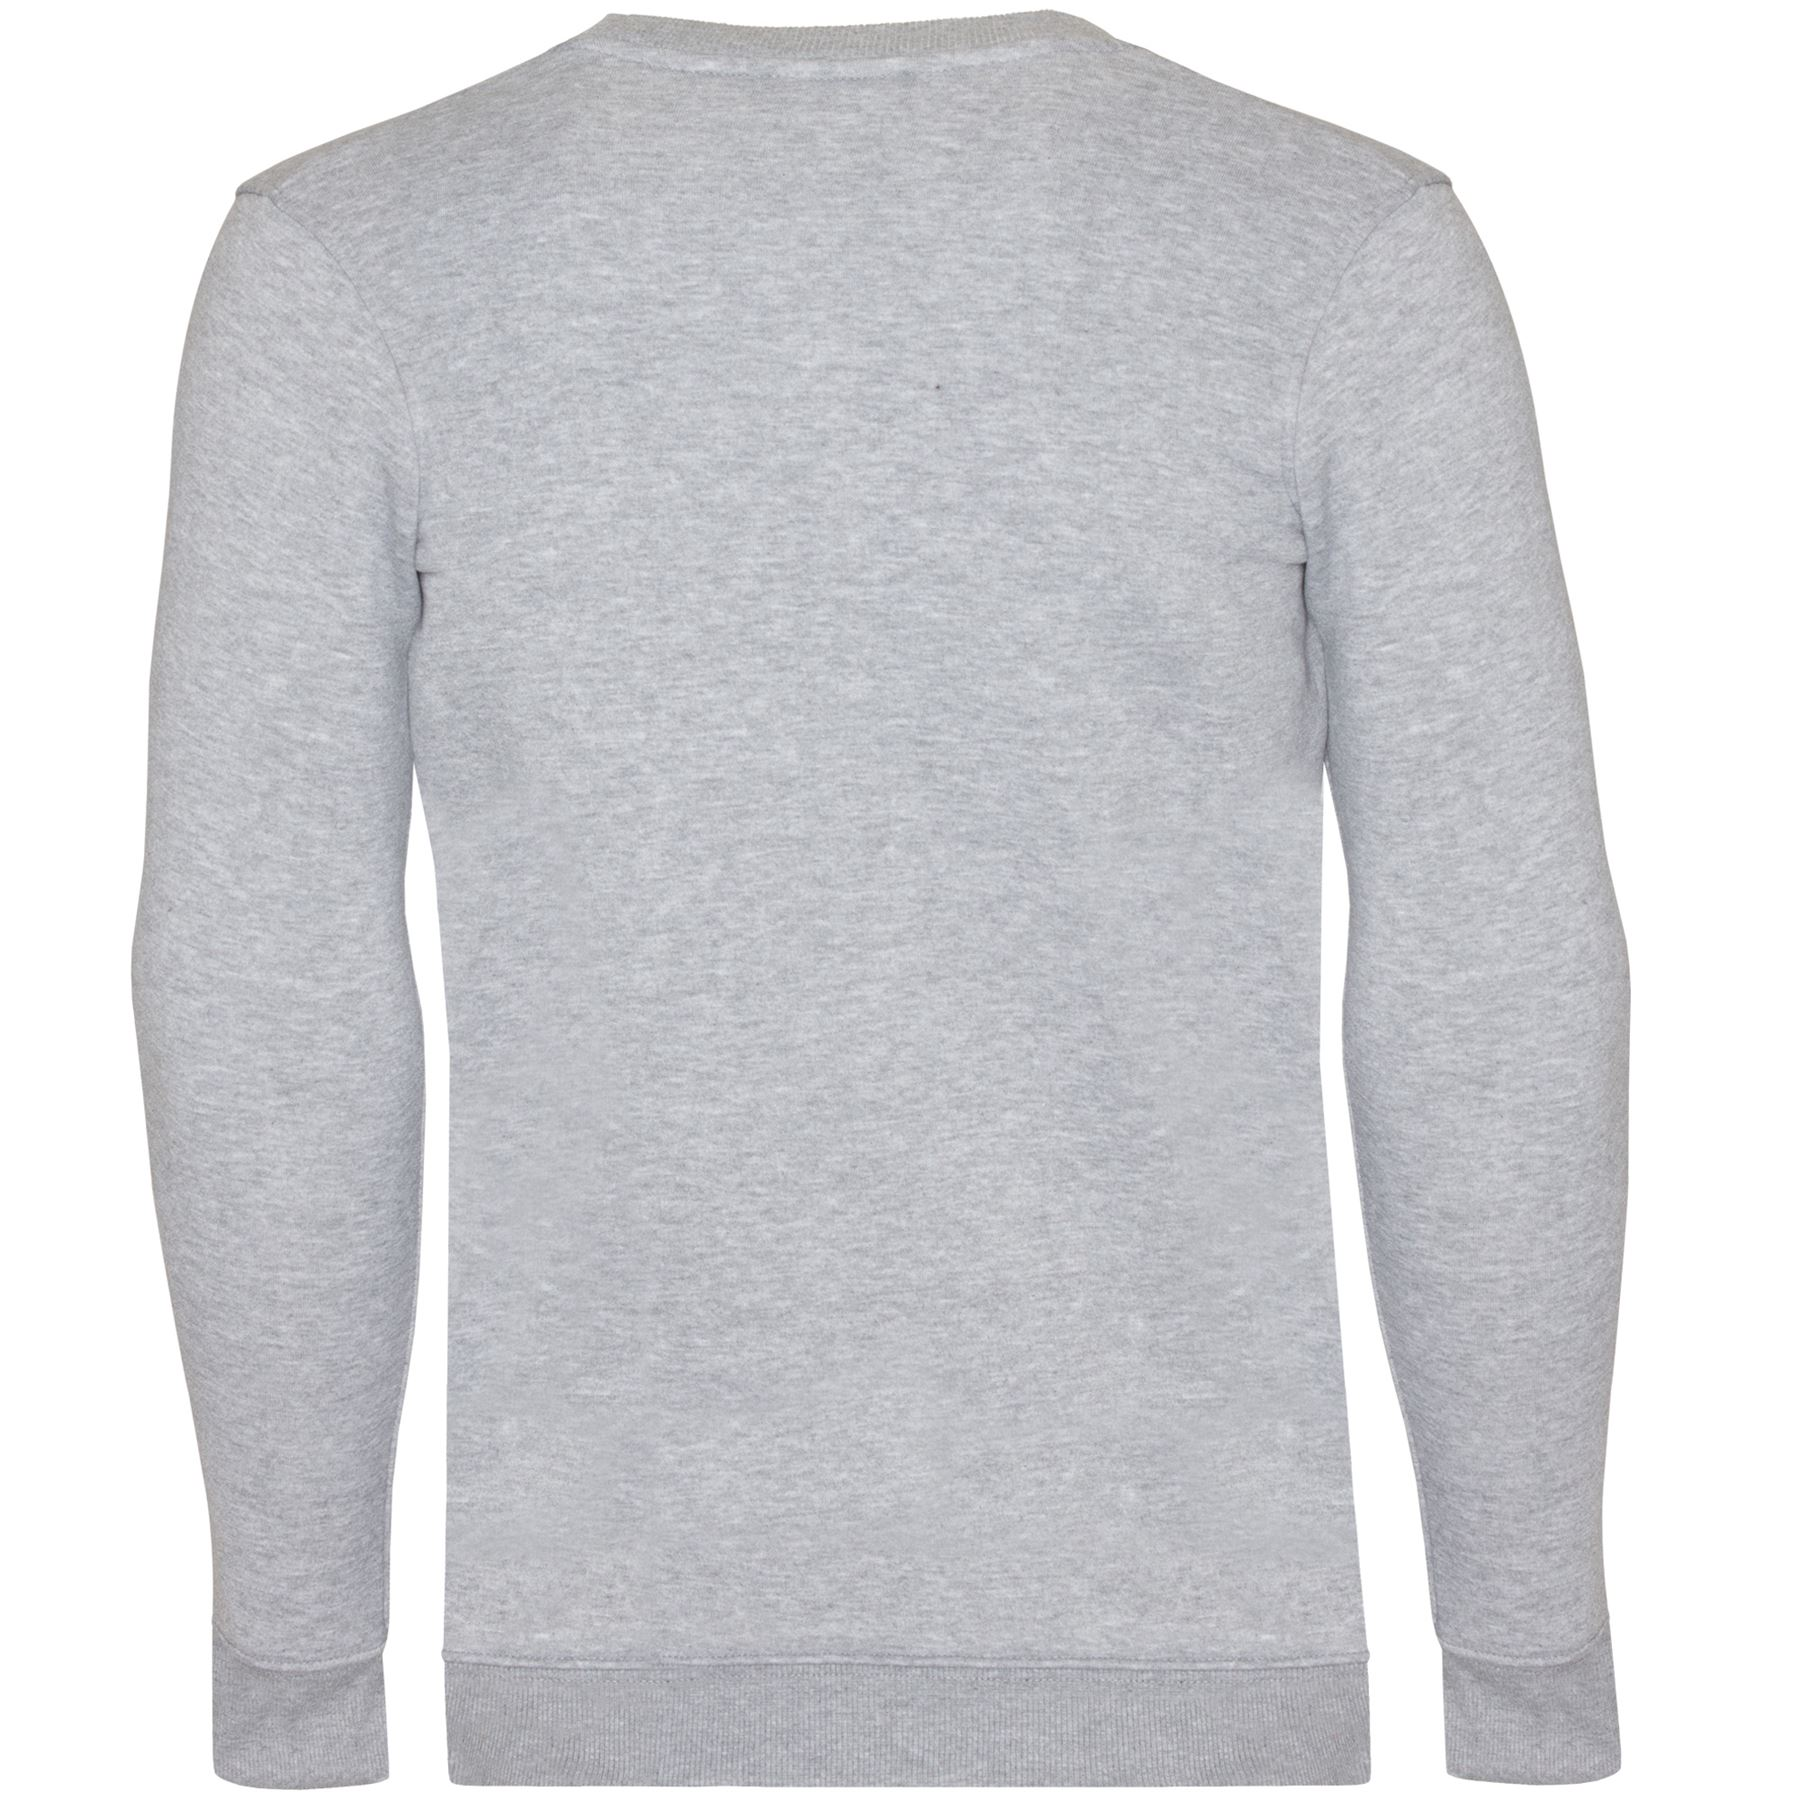 Mens-Crew-Neck-Sweatshirt-Jumper-Casual-Plain-Jersey-Fleece-Sweat-Top-Pullover thumbnail 9